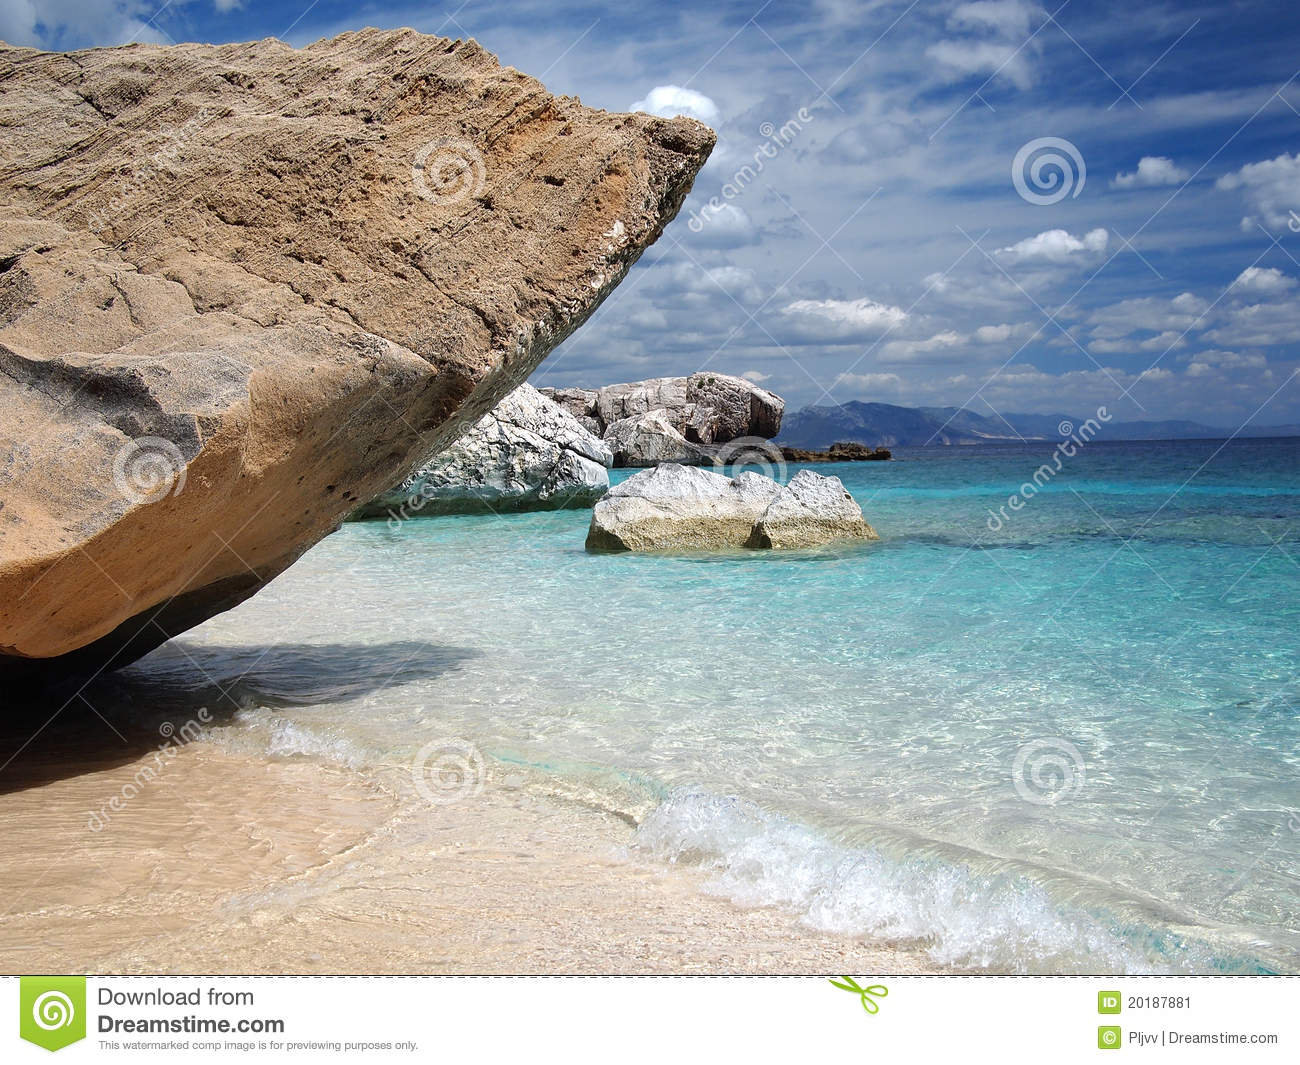 sardinia single men Explore our holidays with no single supplements singles holidays designed so you can travel independently but never alone – always without paying a single supplement.